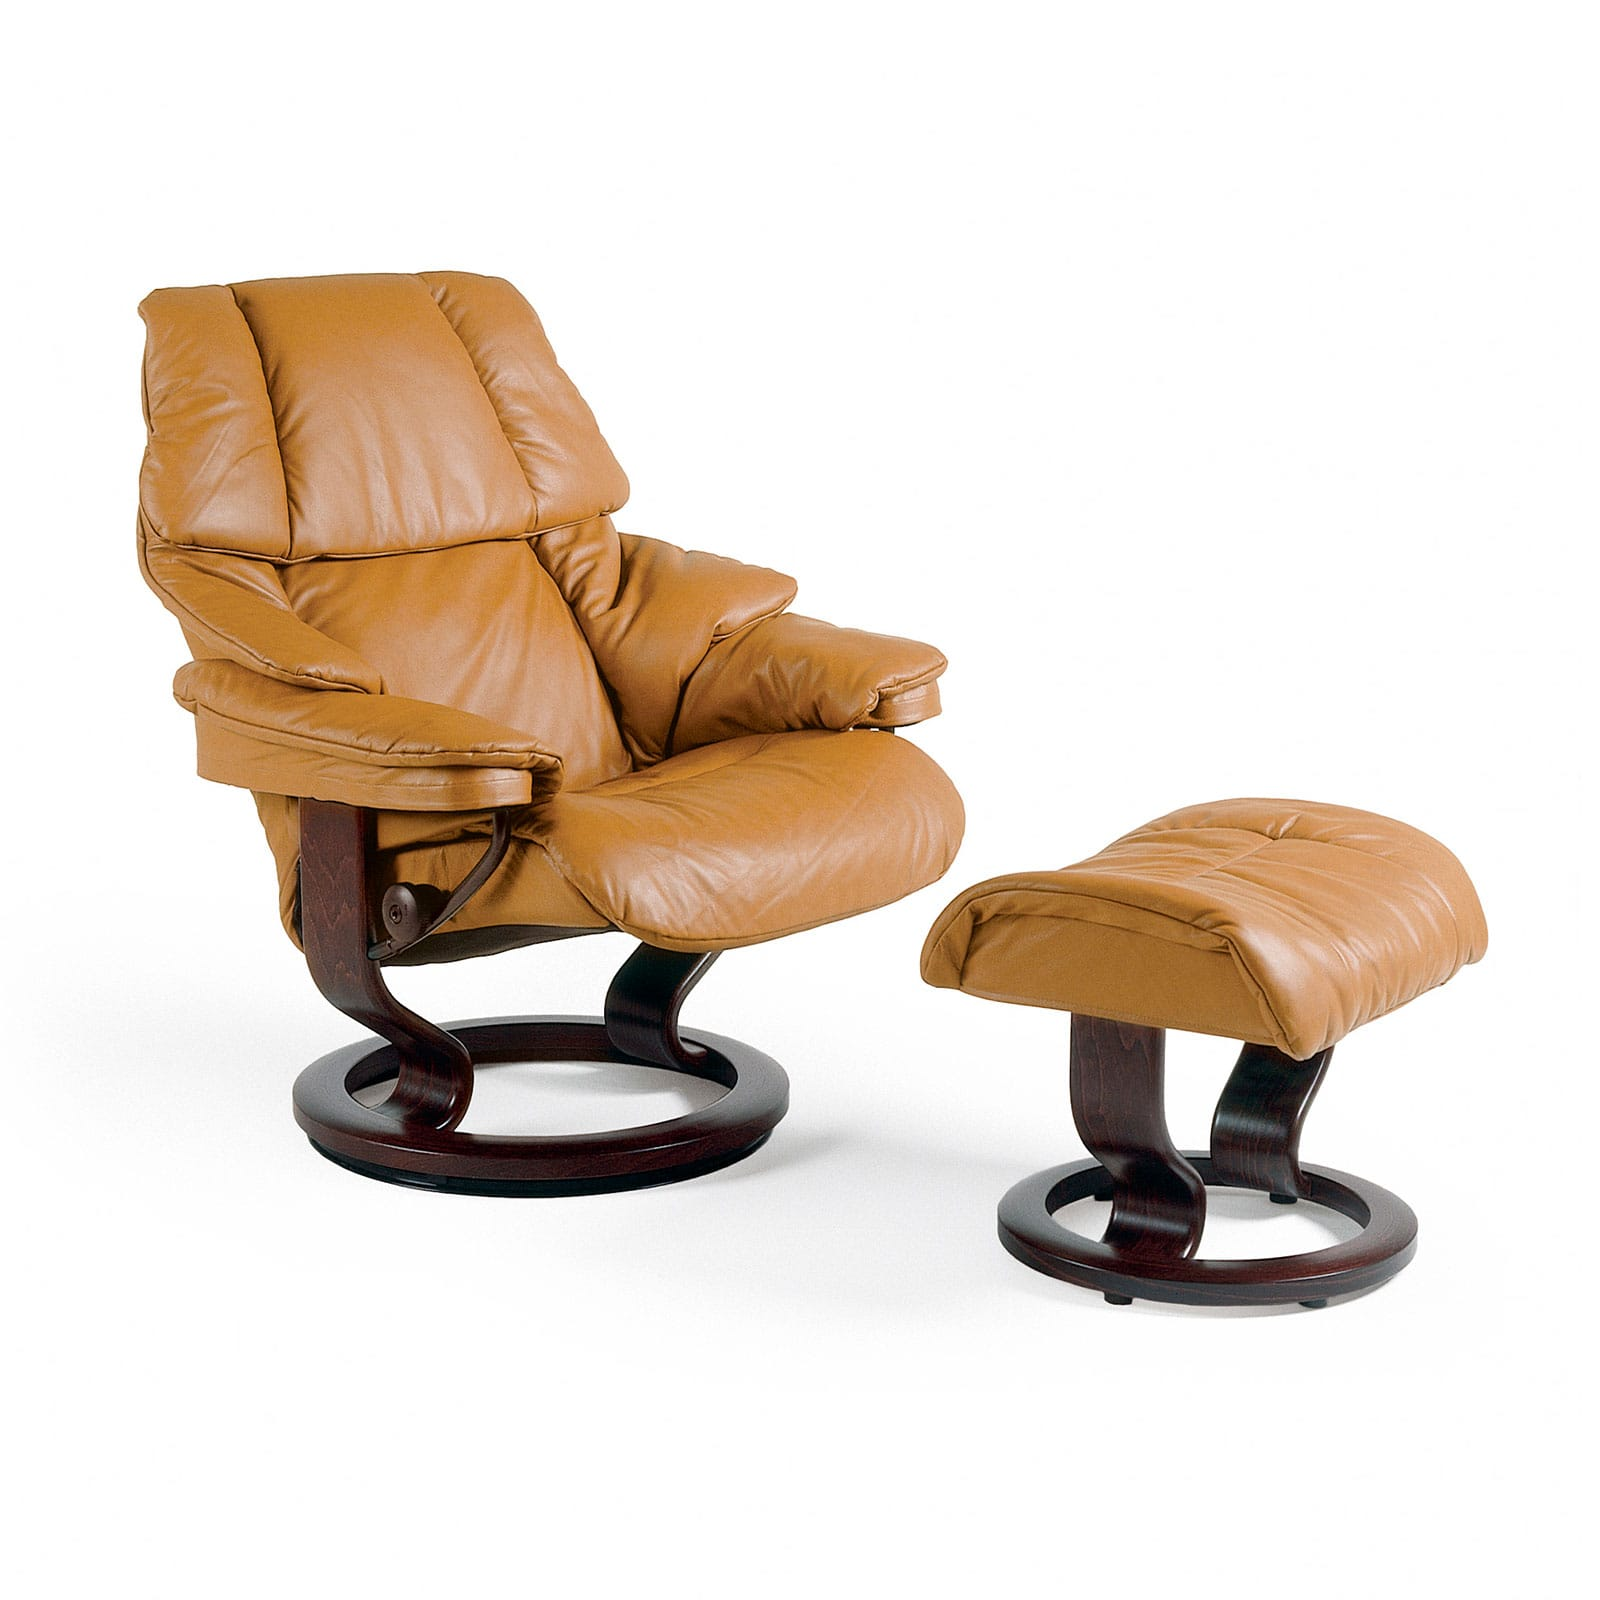 Stressless Sessel Schmal Nuovoform Relaxsessel | Sessel Archives